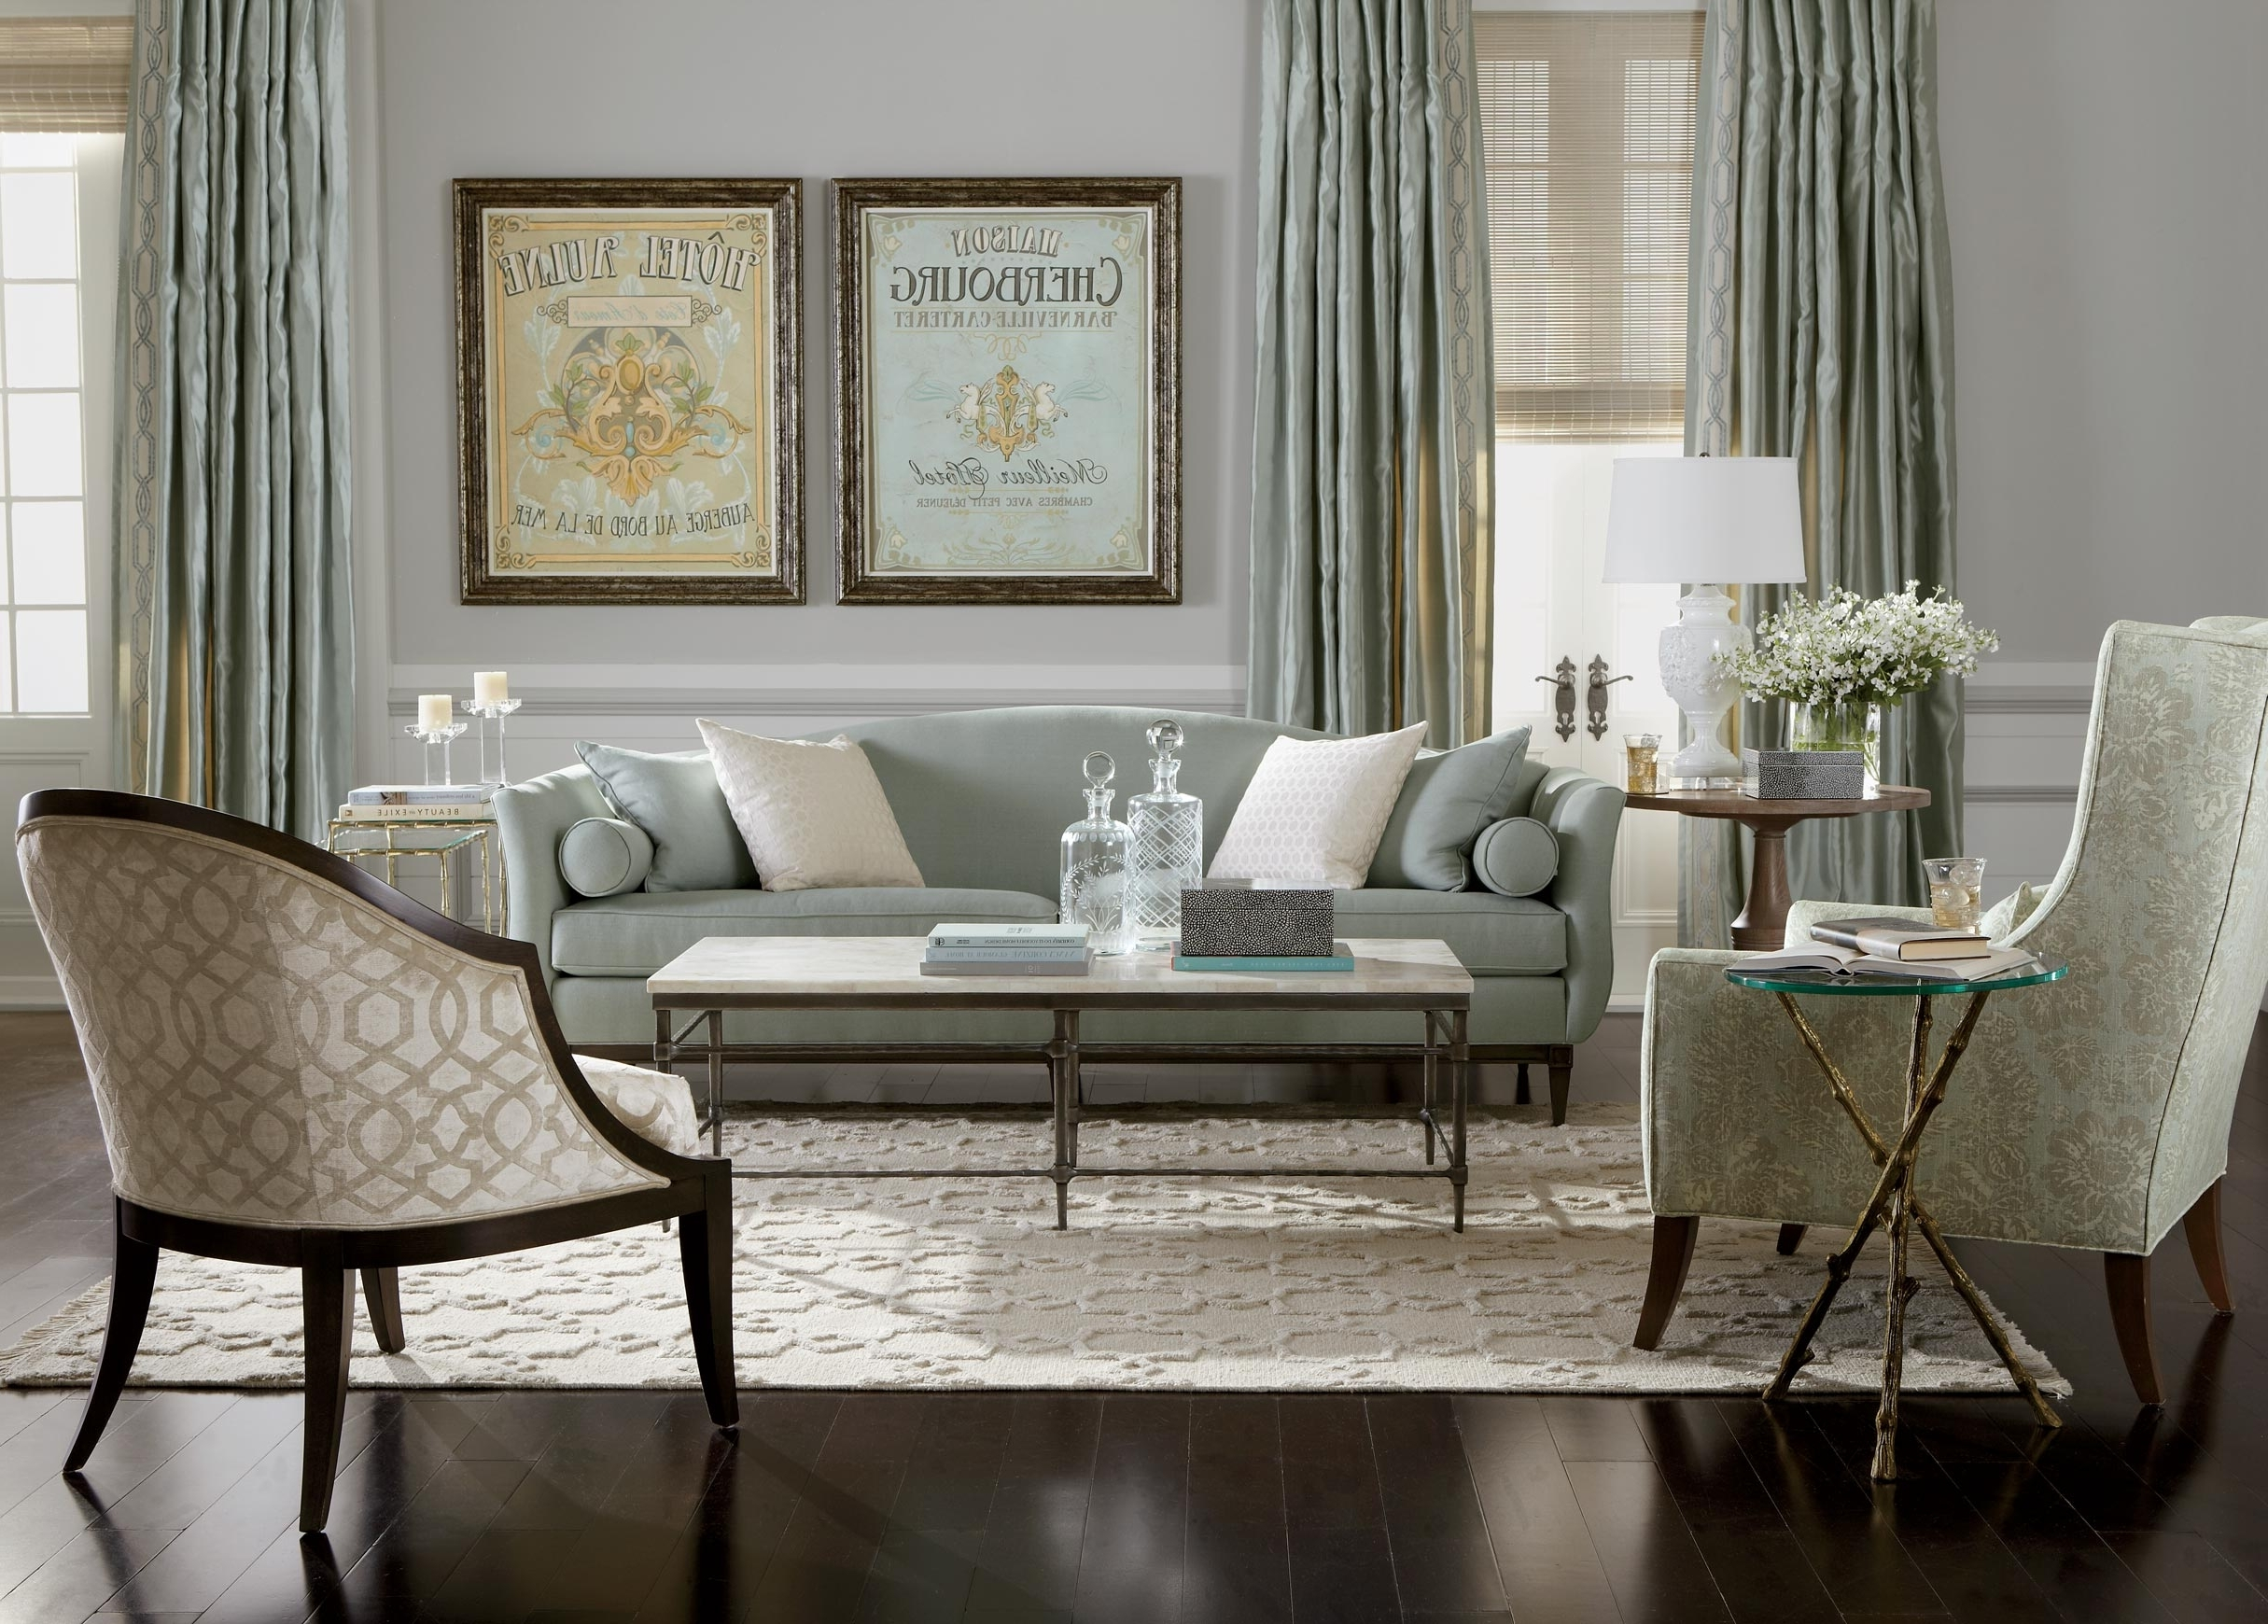 Ethan Allen Locations Ethan Allen Leather Sofa Ethan Allen With Fashionable Ethan Allen Sofas And Chairs (View 7 of 15)